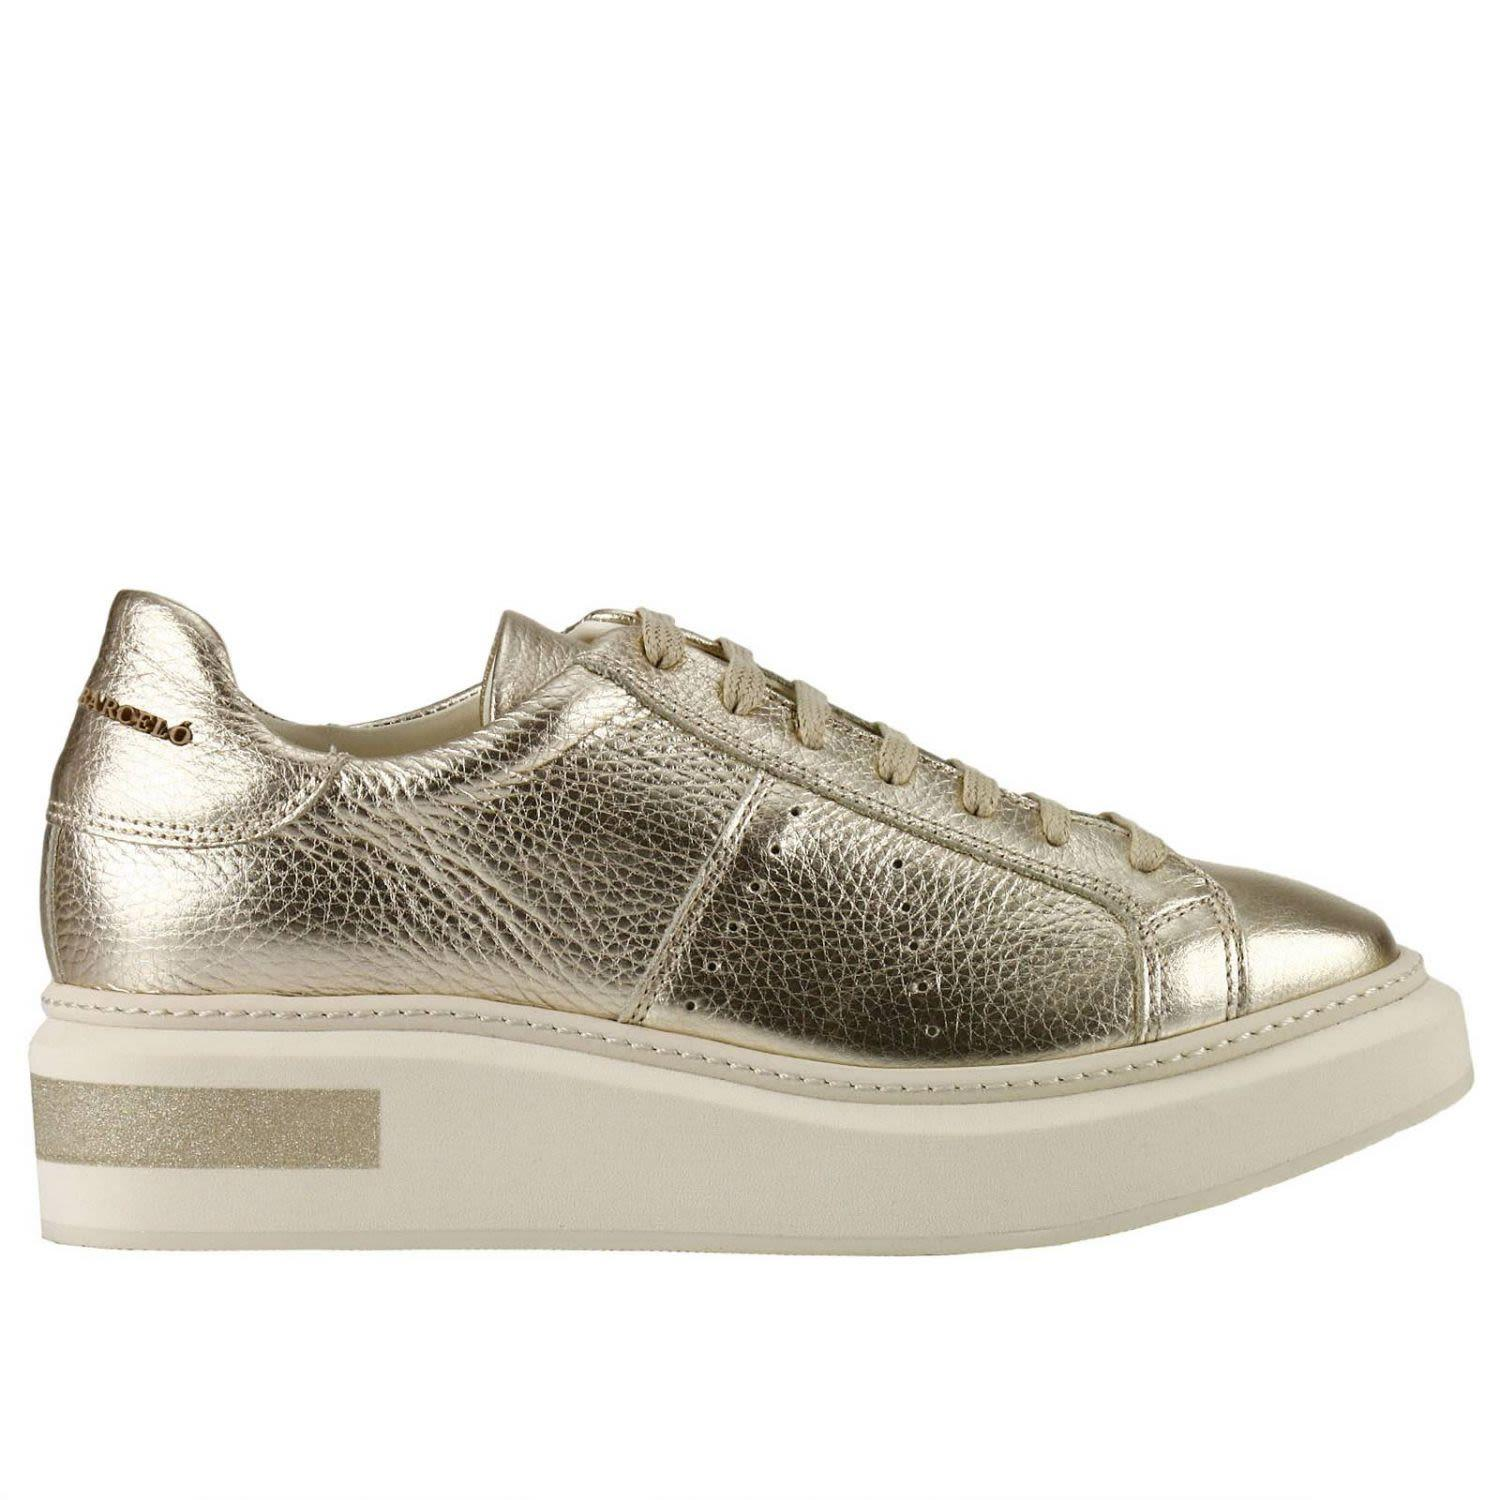 Manuel BarcelÒ Sneakers Sneakers Women  In Platinum